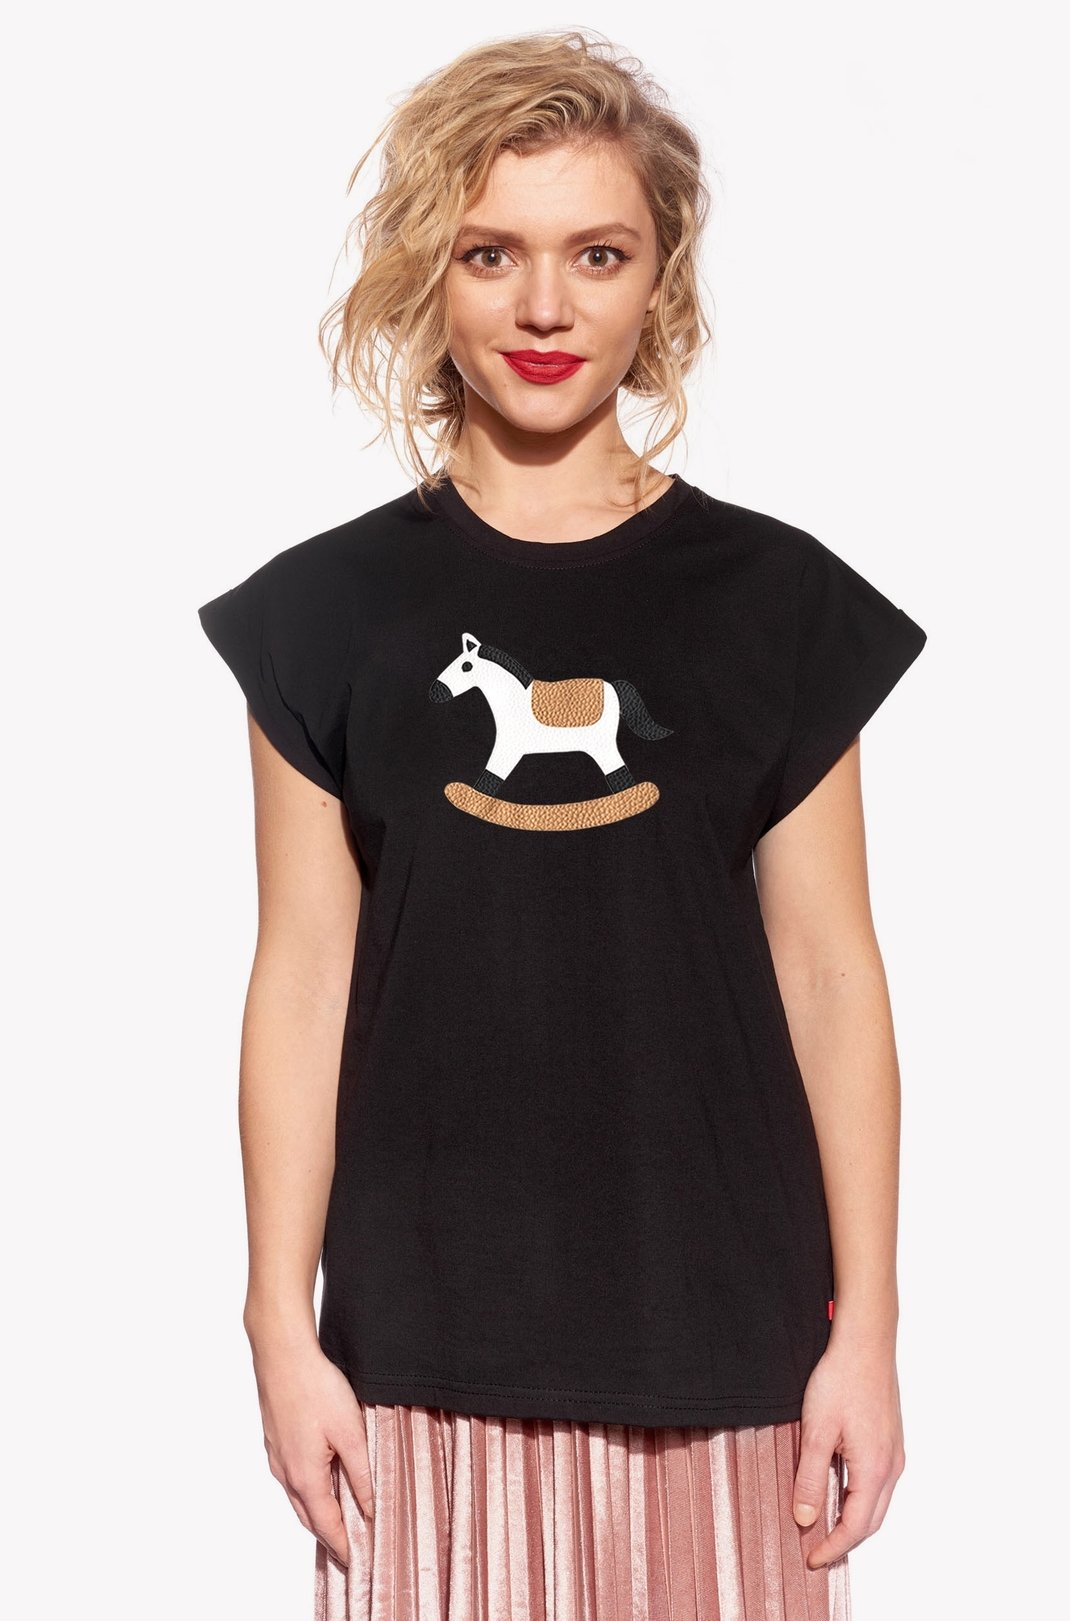 Shirt with rocking horse